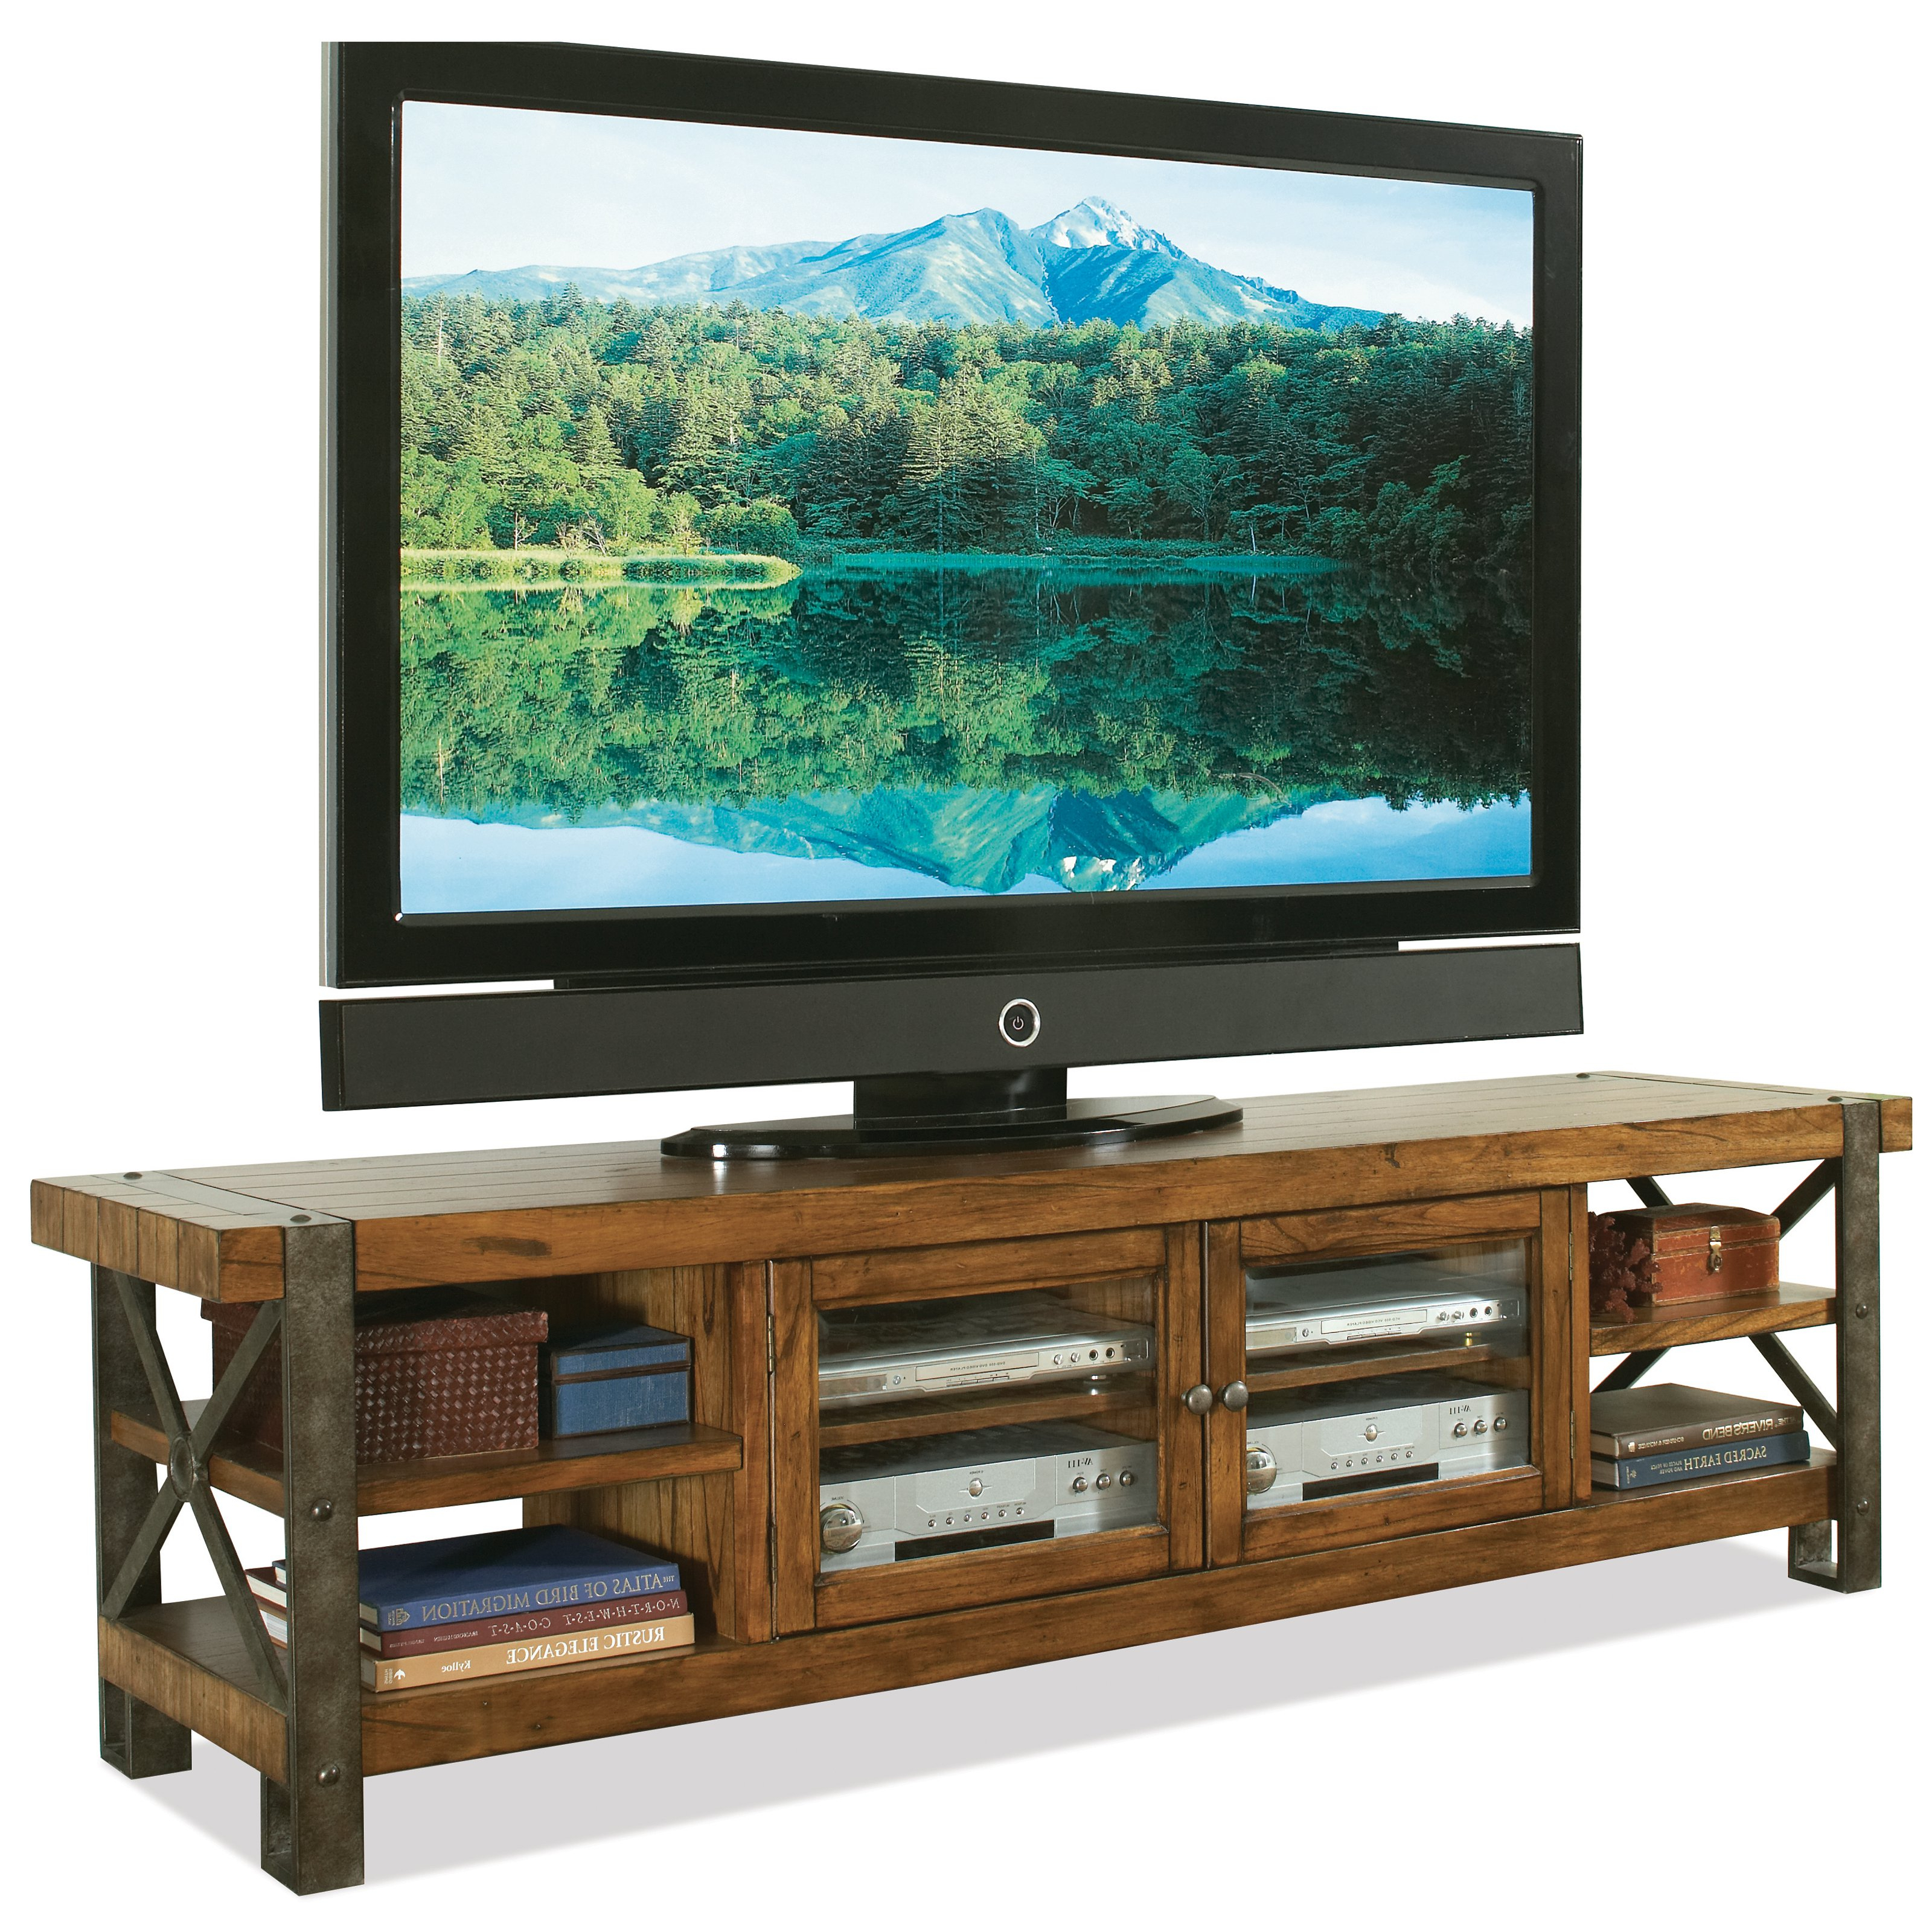 Tv Stand Sonax Display Chimney Stands & Media Consoles – Buyouapp Pertaining To Well Liked Sonax Tv Stands (View 18 of 20)